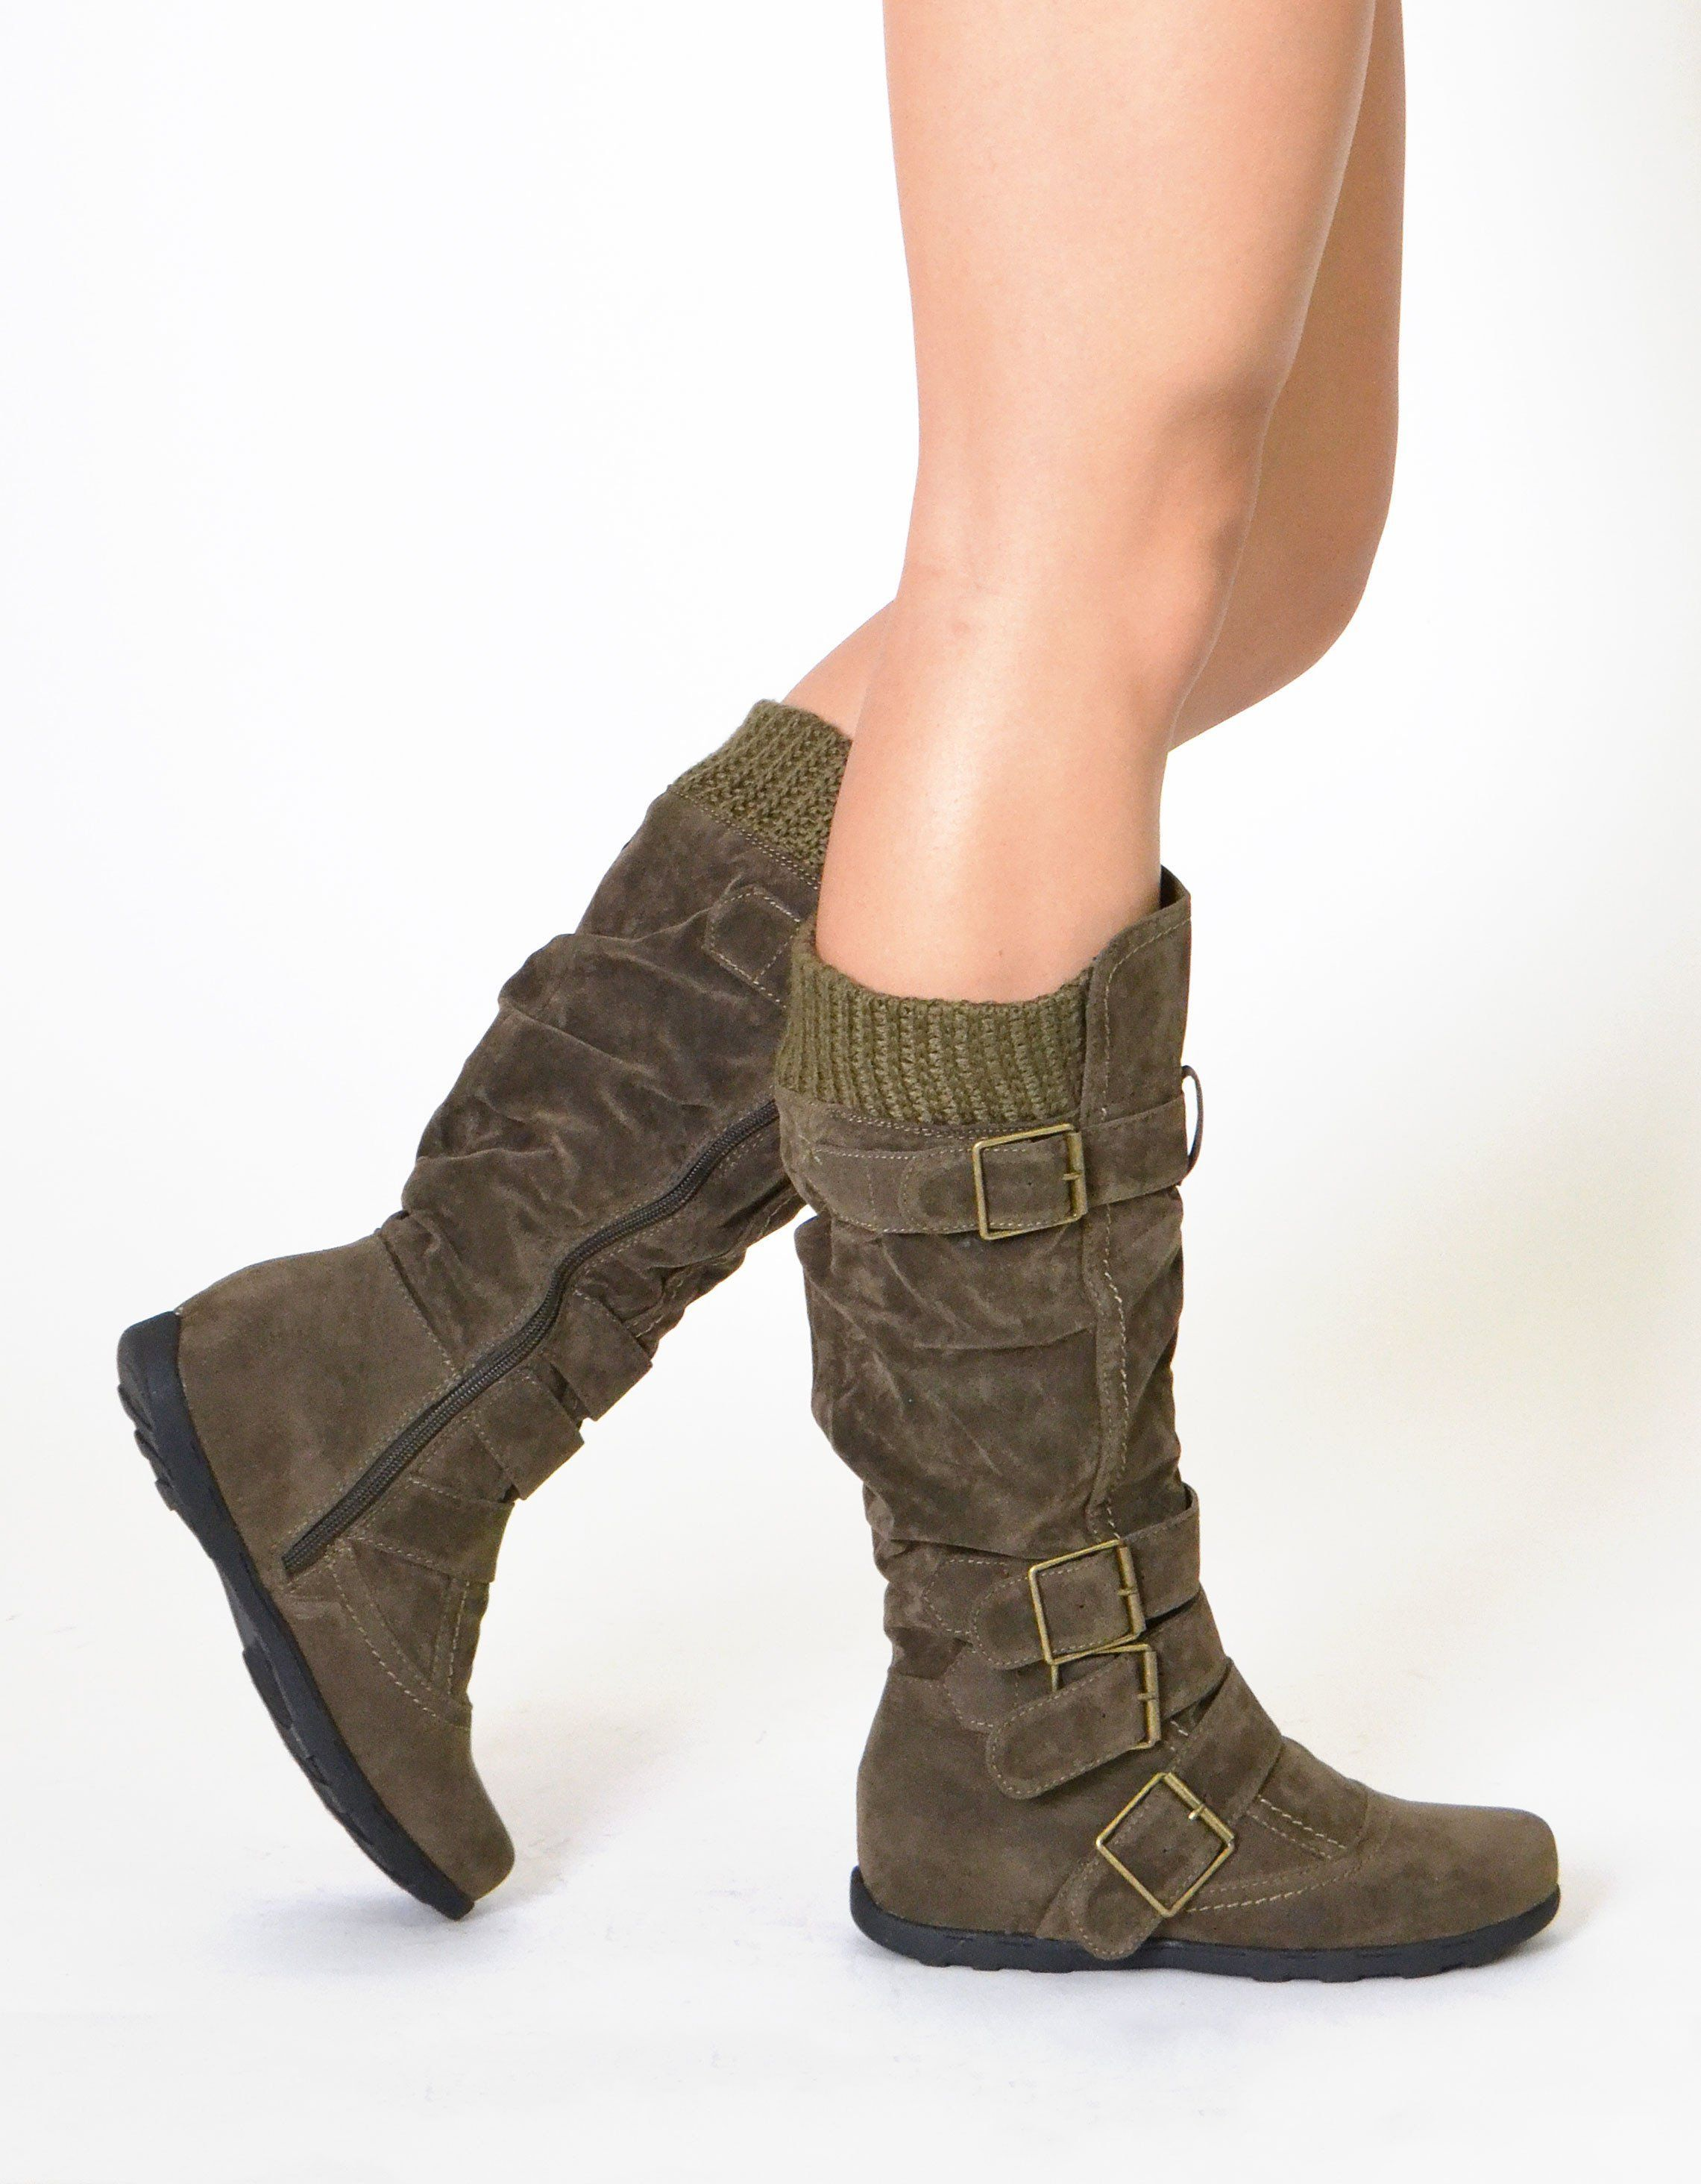 20bd700d313 Calves · Stay warm and still be fashionable in this stylish knee high boot.  - Material-